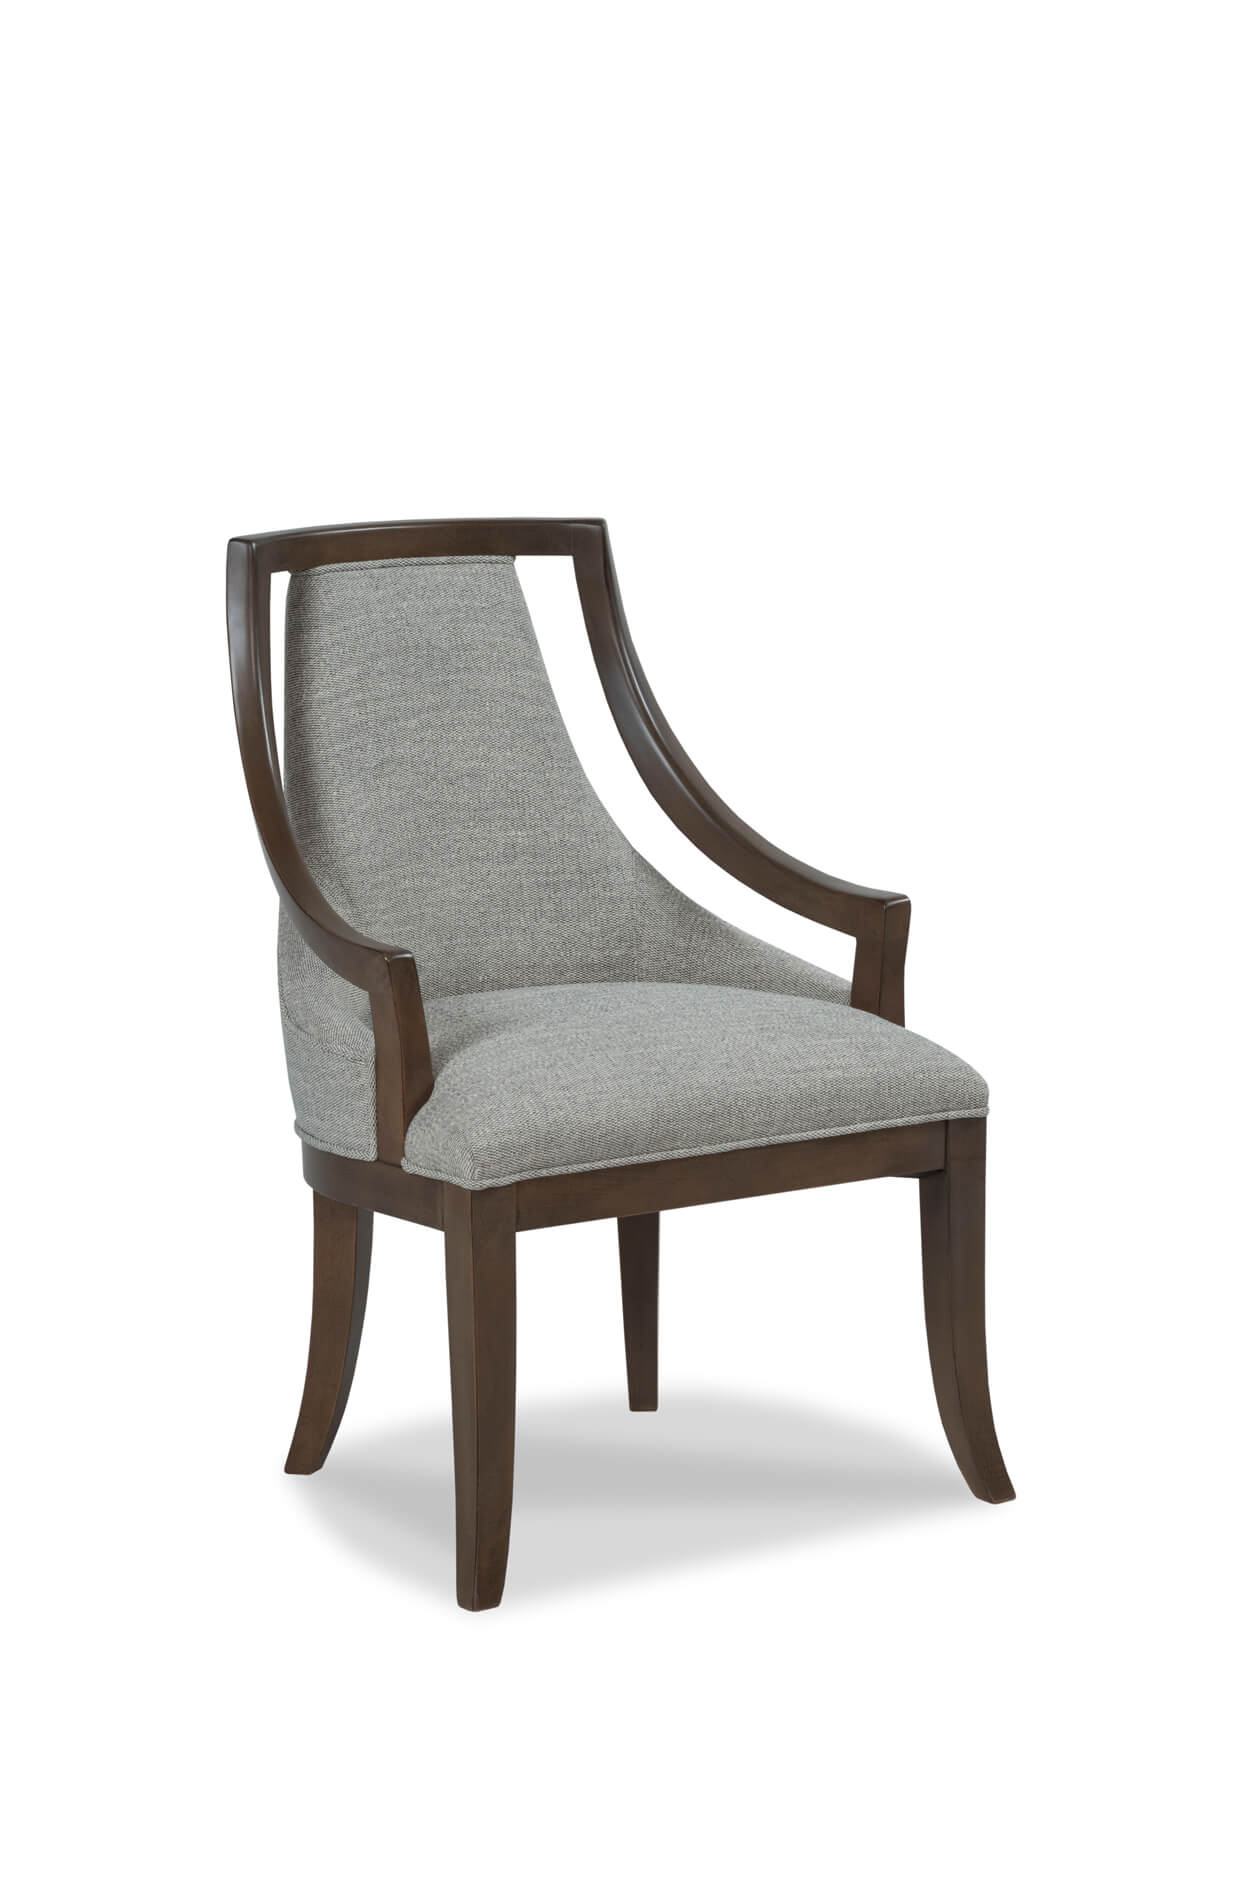 Fairfield's Caldwell Upholstered Dining Arm Chair